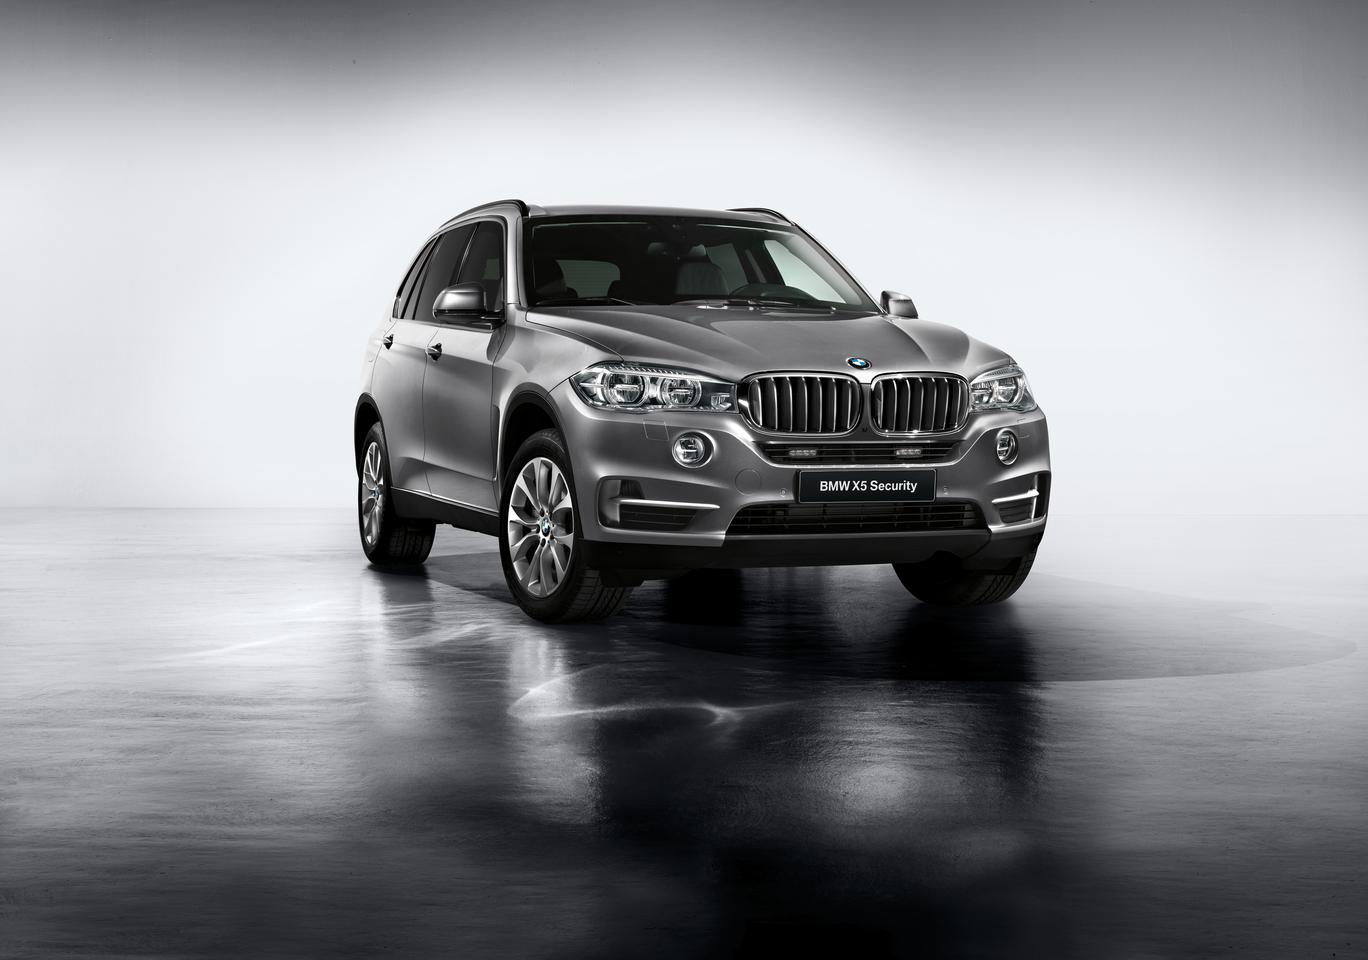 The BMW X5 Security Plus is an armored version of the X5 SUV